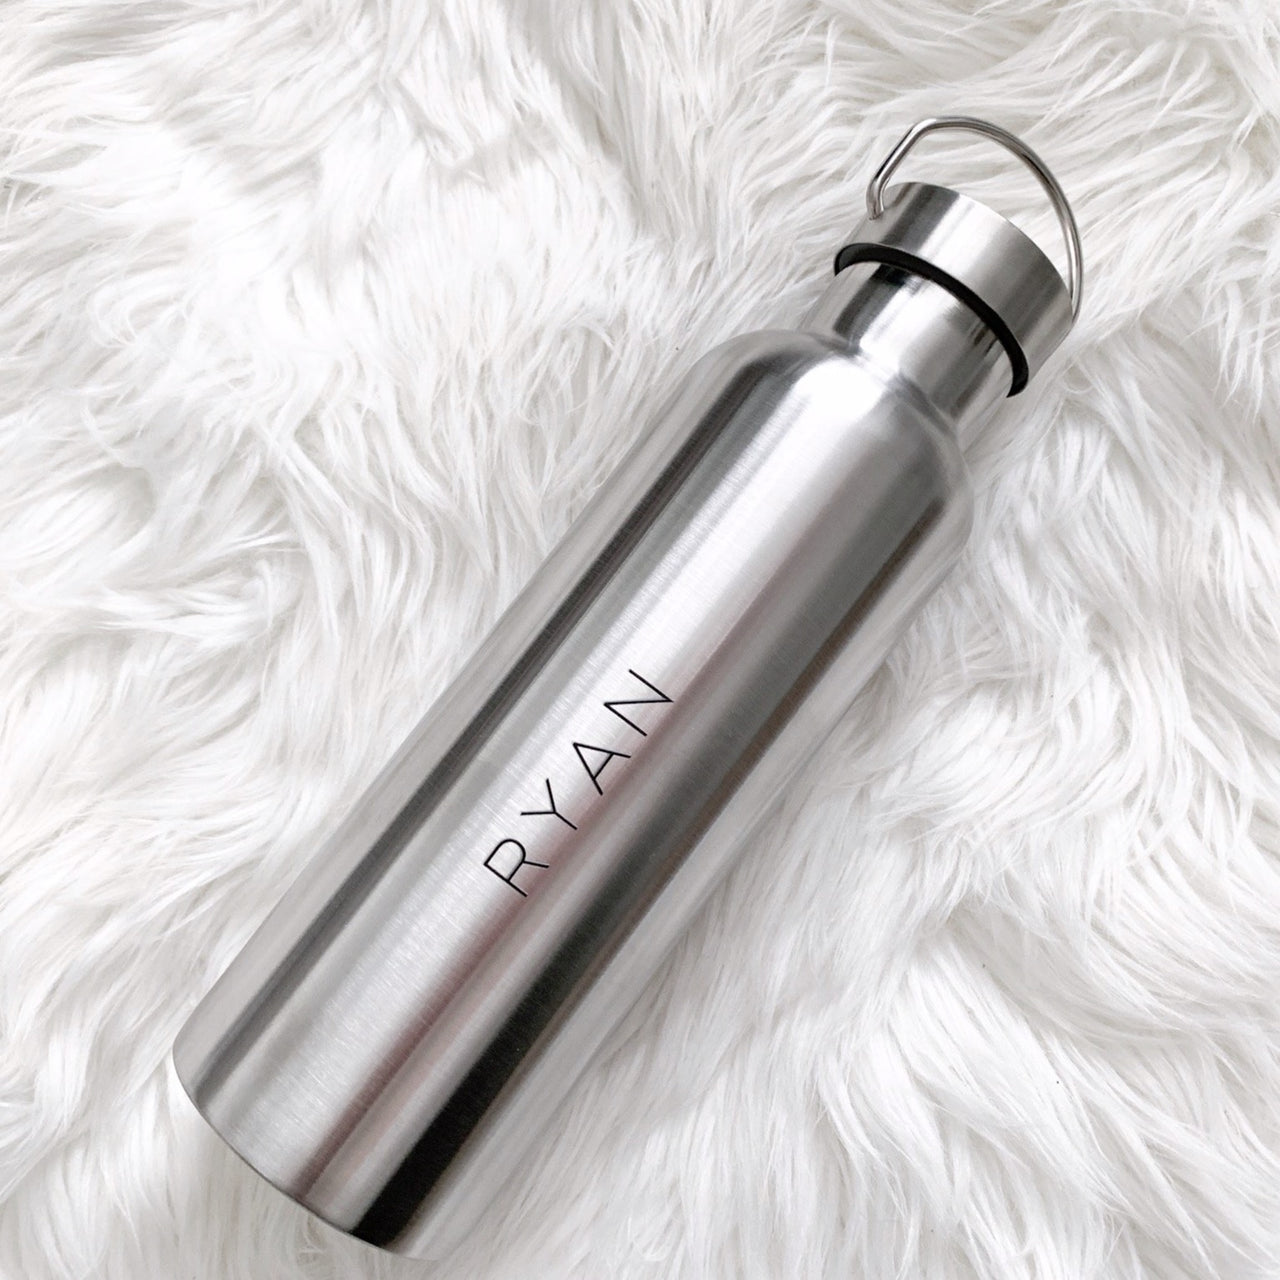 Personalized Chrome Stainless Steel Water Bottle